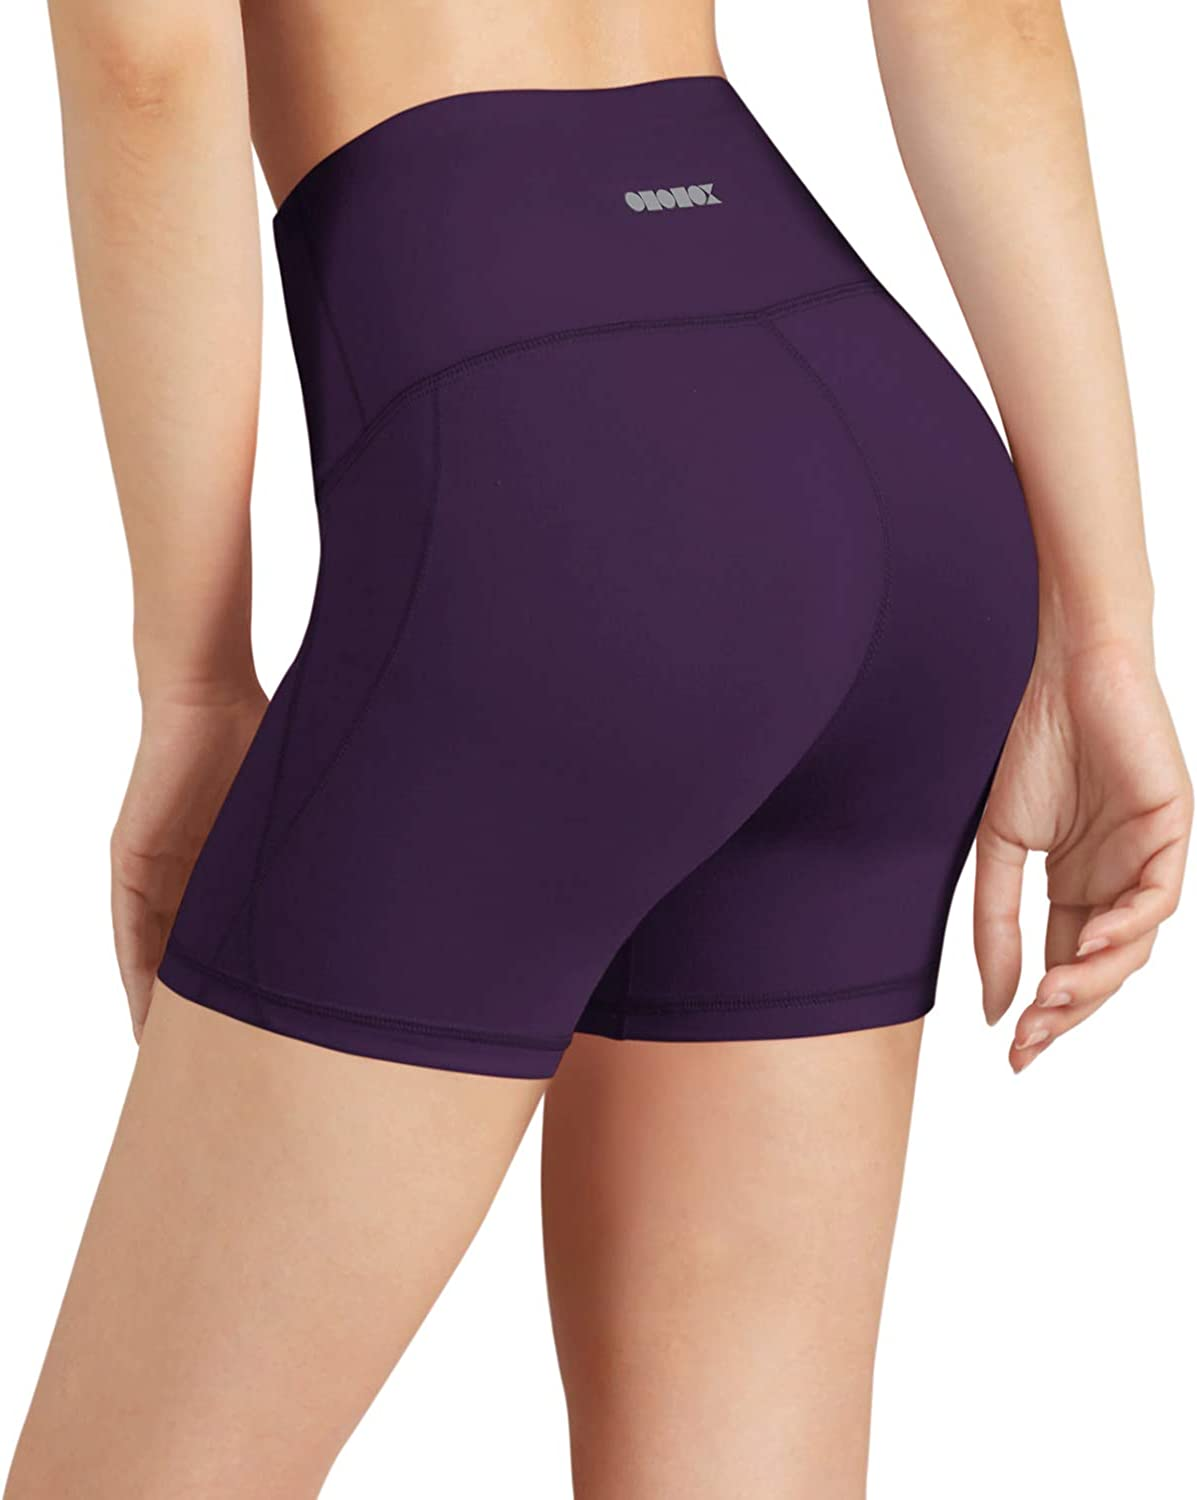 ODODOS Women's Yoga Short Tummy Control Workout Running Athletic Non See-Through Yoga Shorts with Hidden Pocket: Clothing